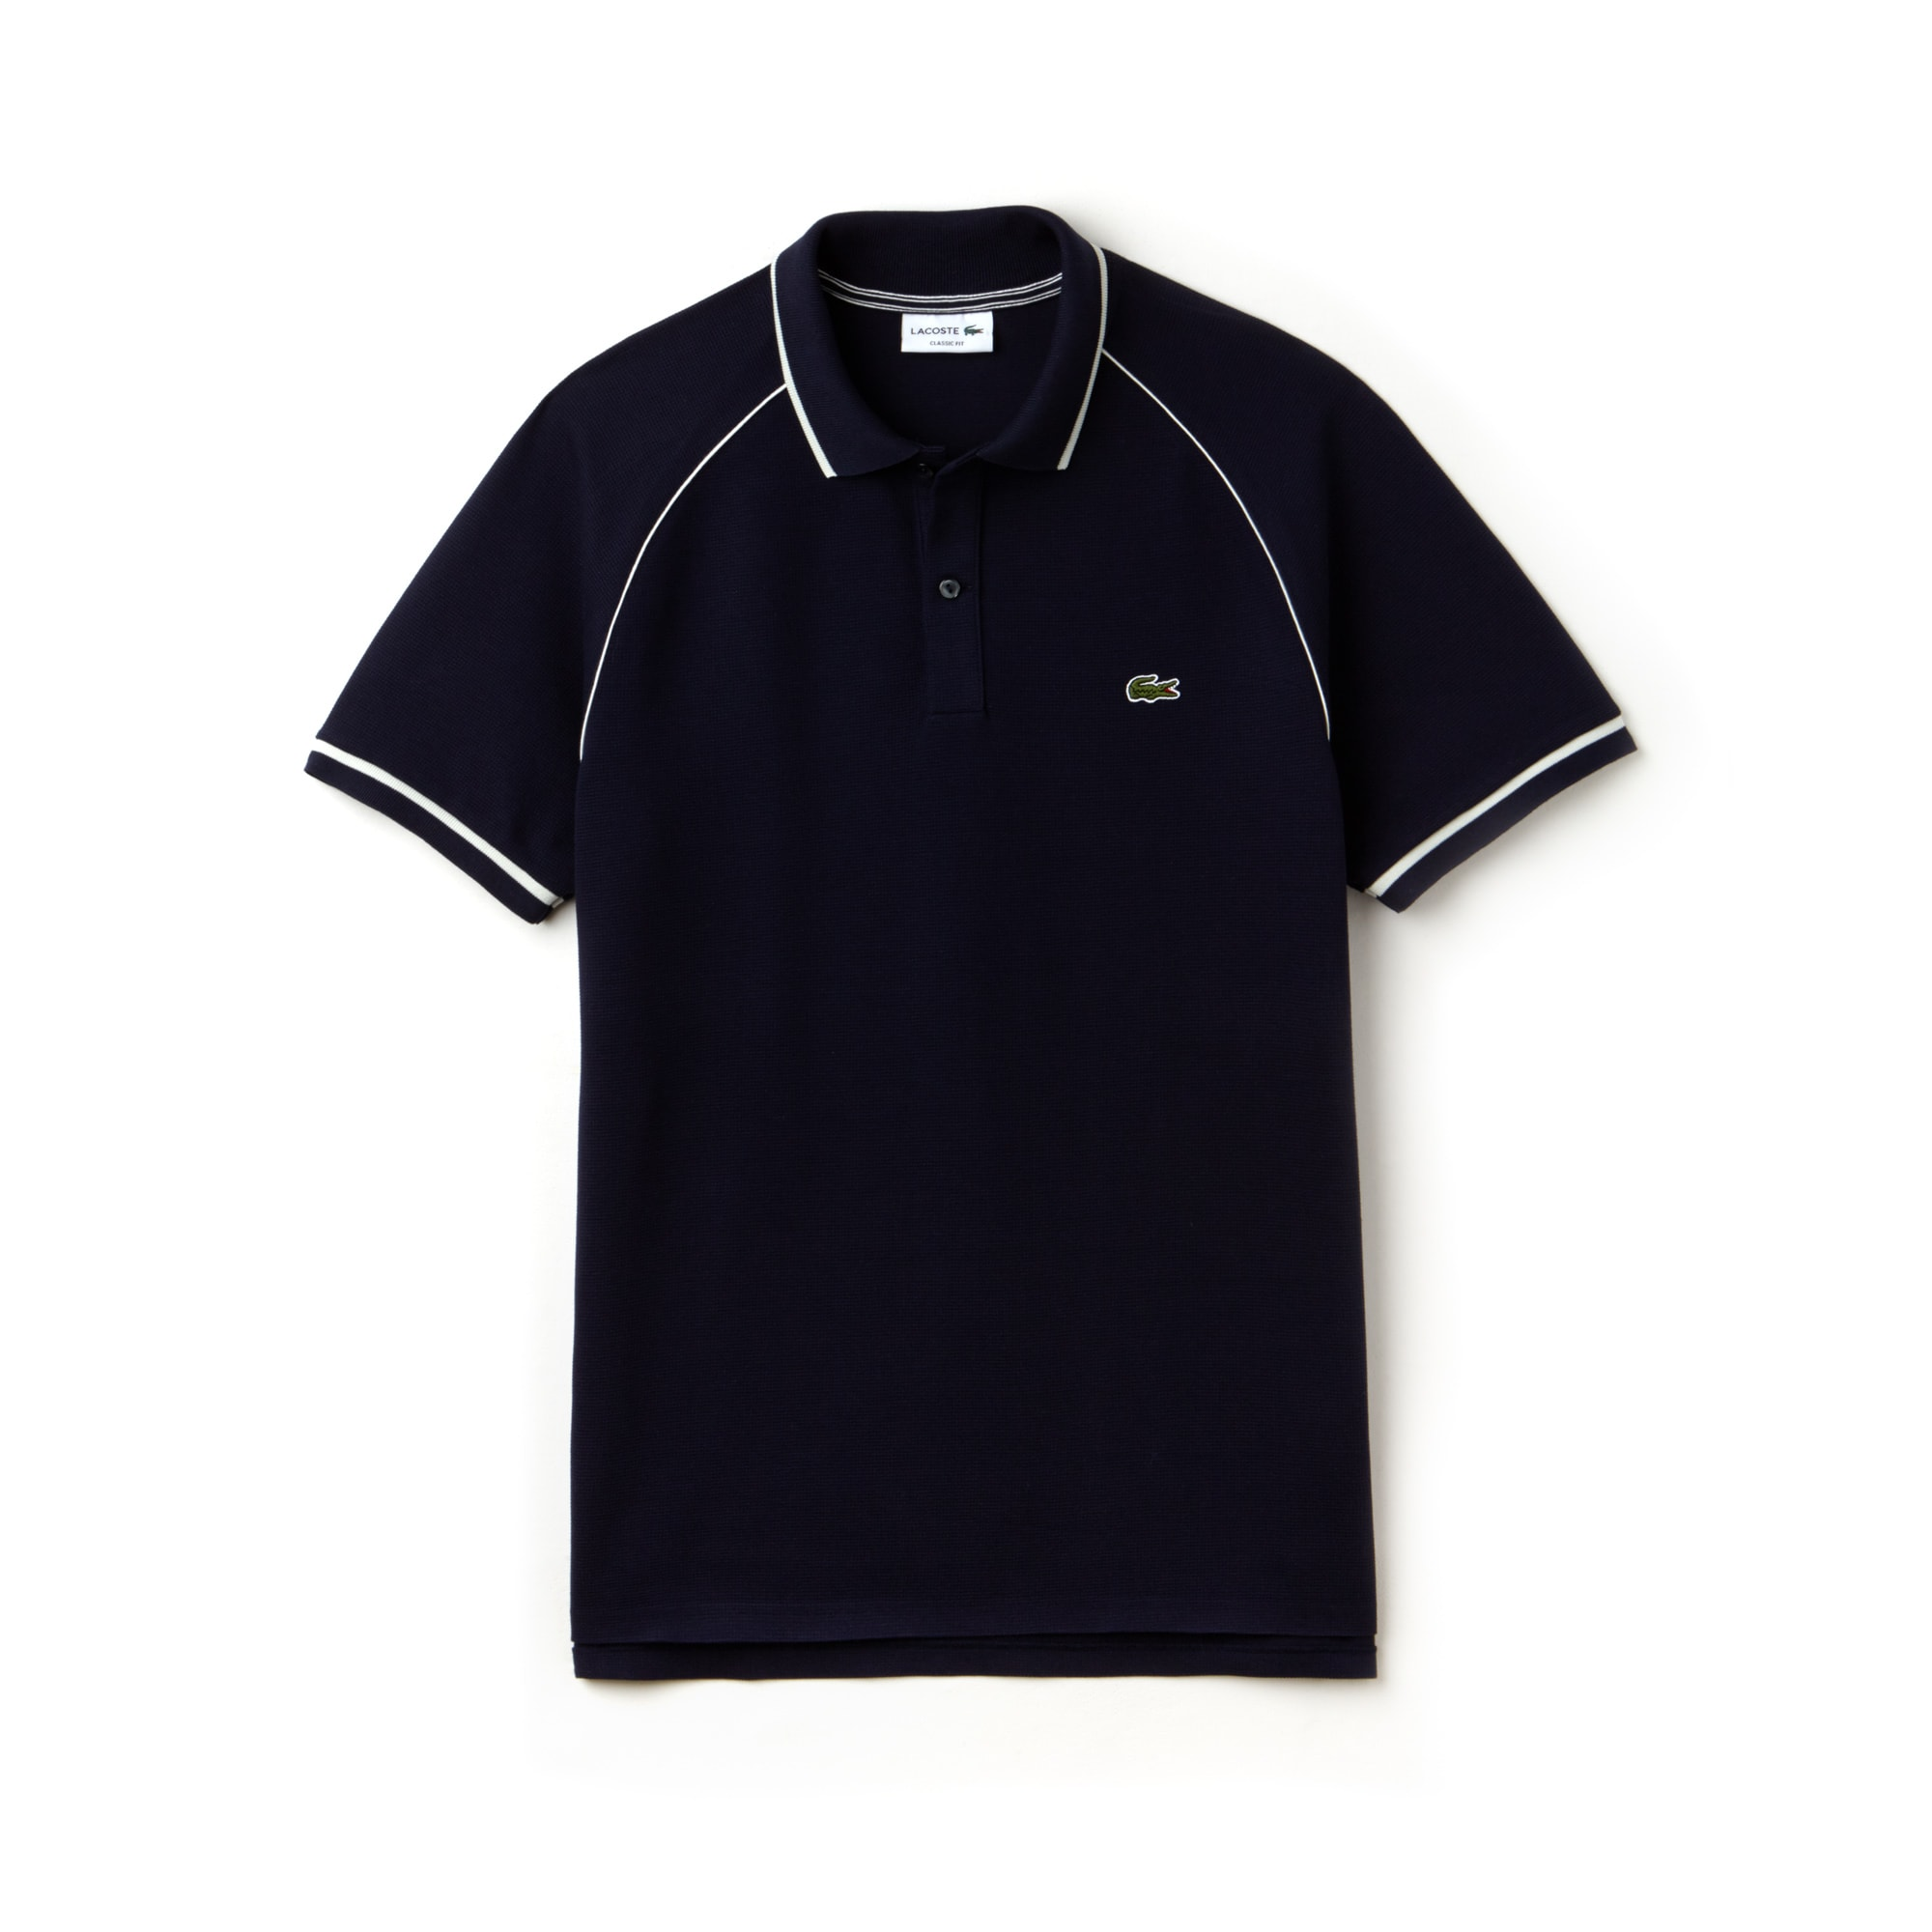 Men's Lacoste Classic Fit Piped Square Knit Polo Shirt